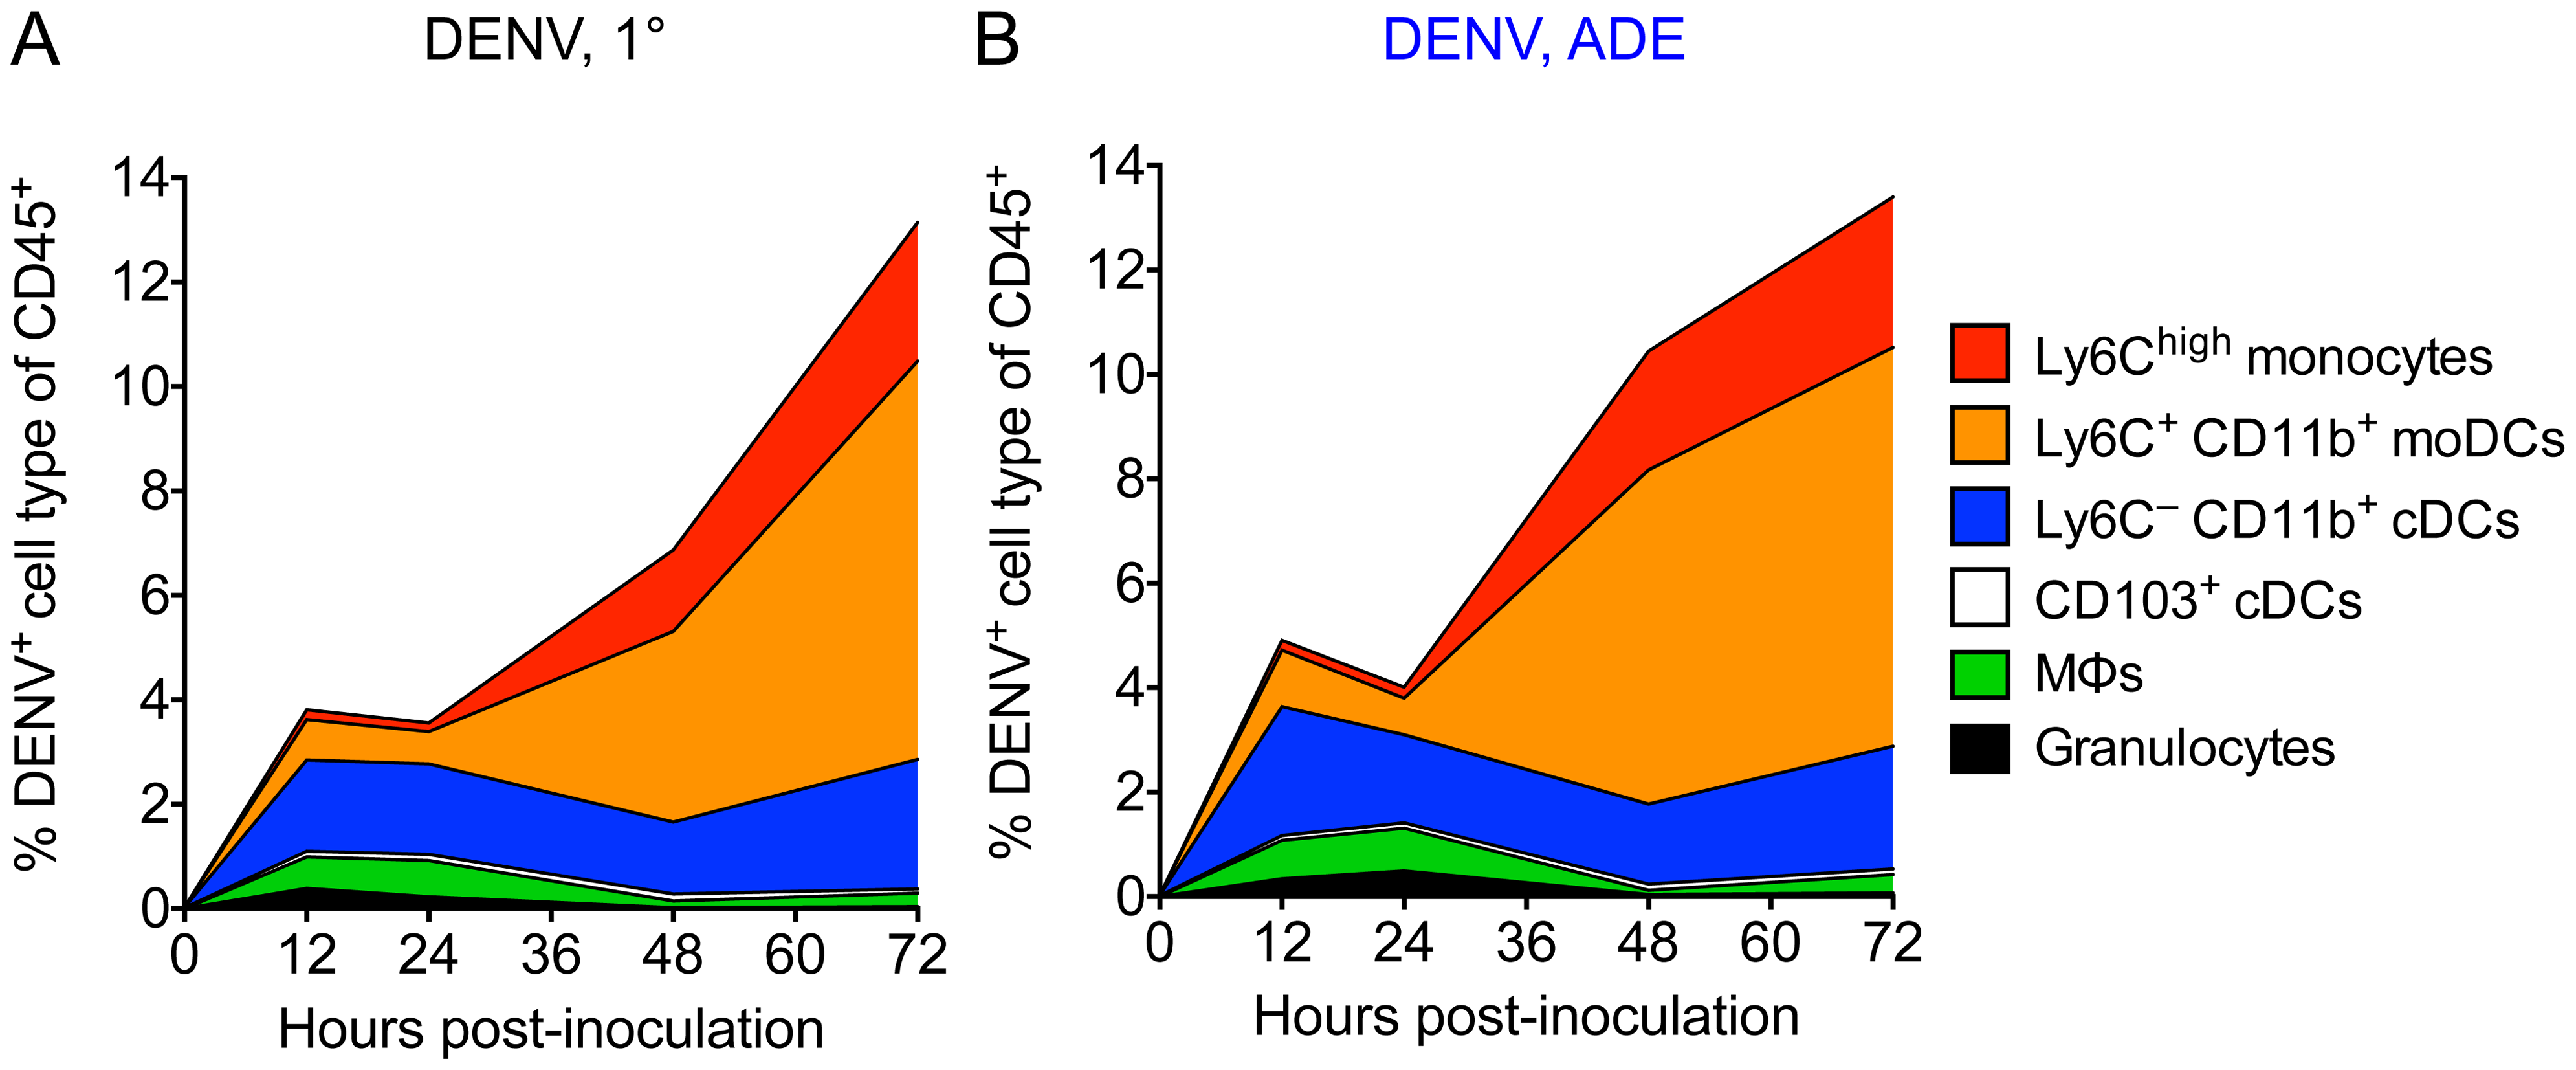 The main targets for DENV infection in the dermis over time.